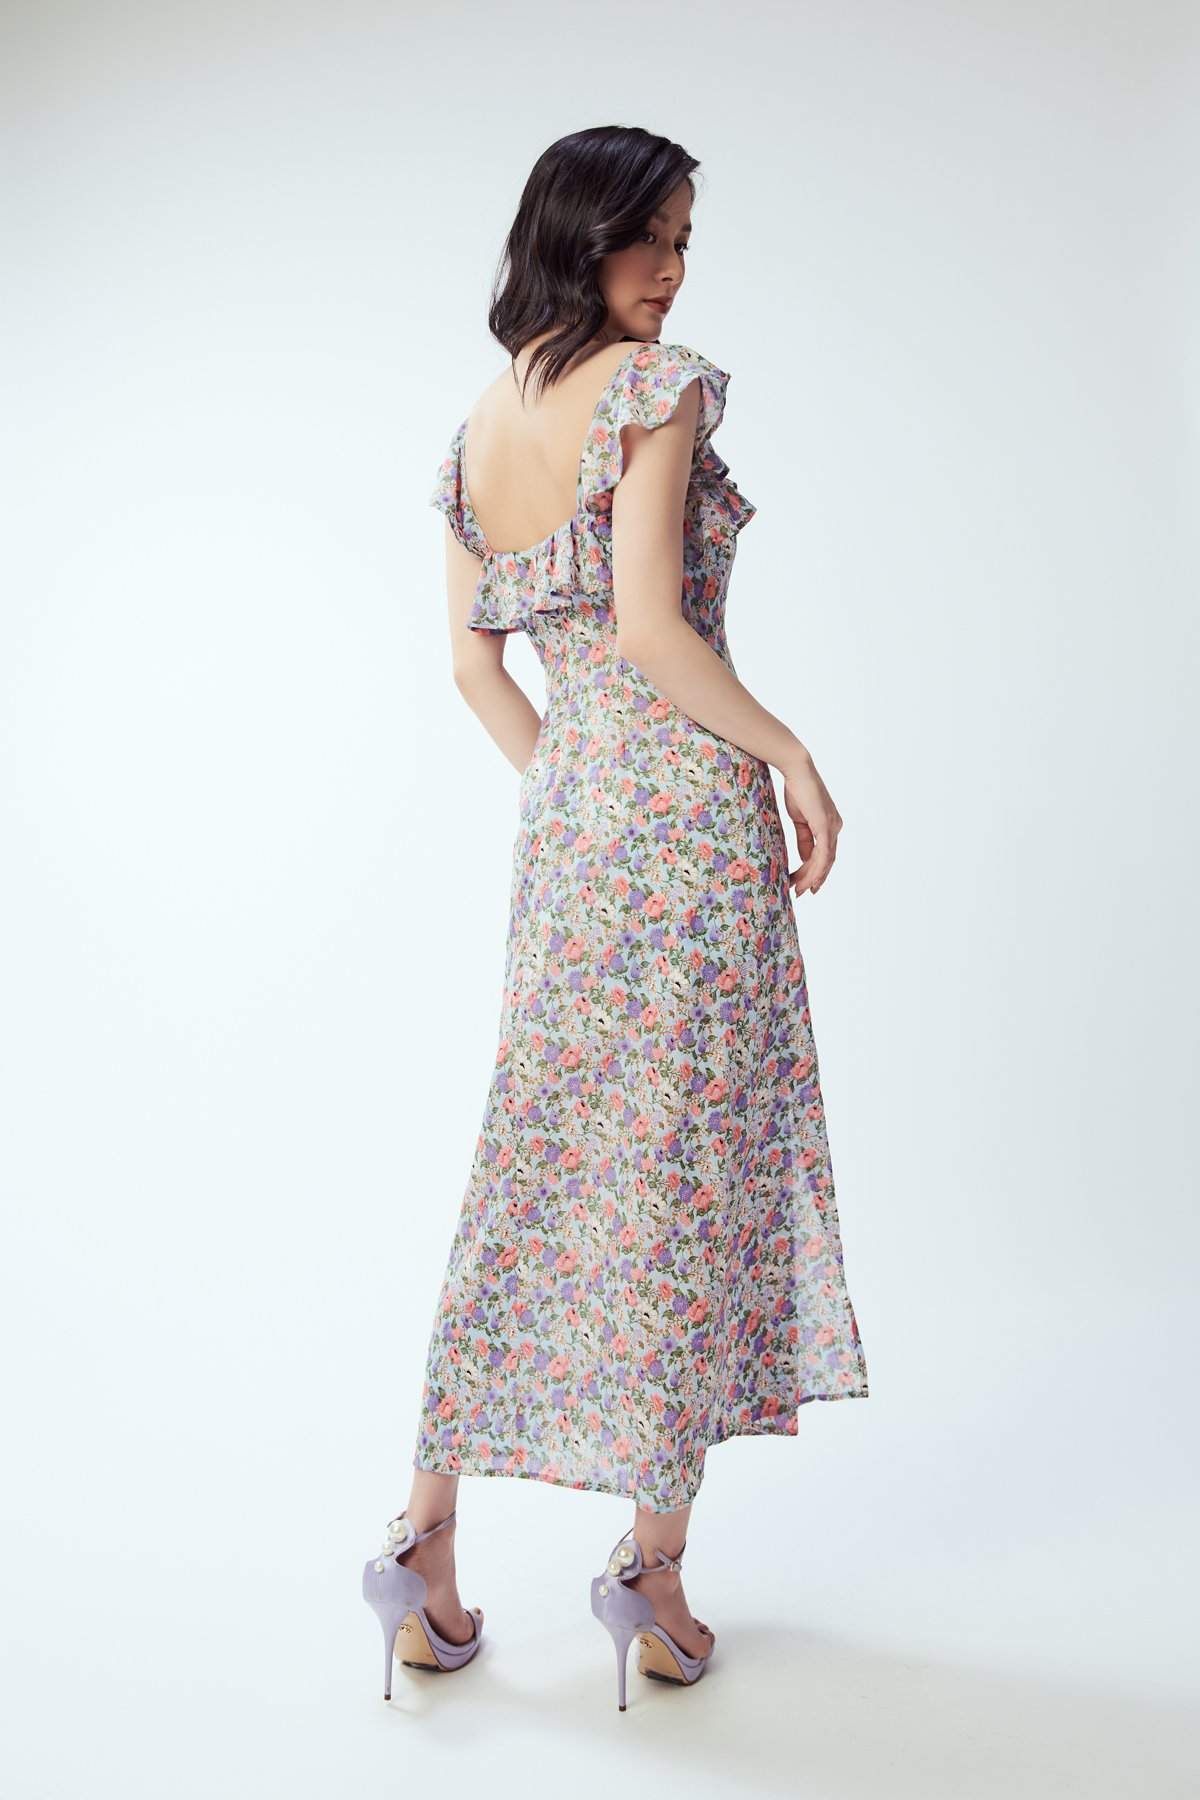 Đầm hoa xẻ tà - Retro floral dress